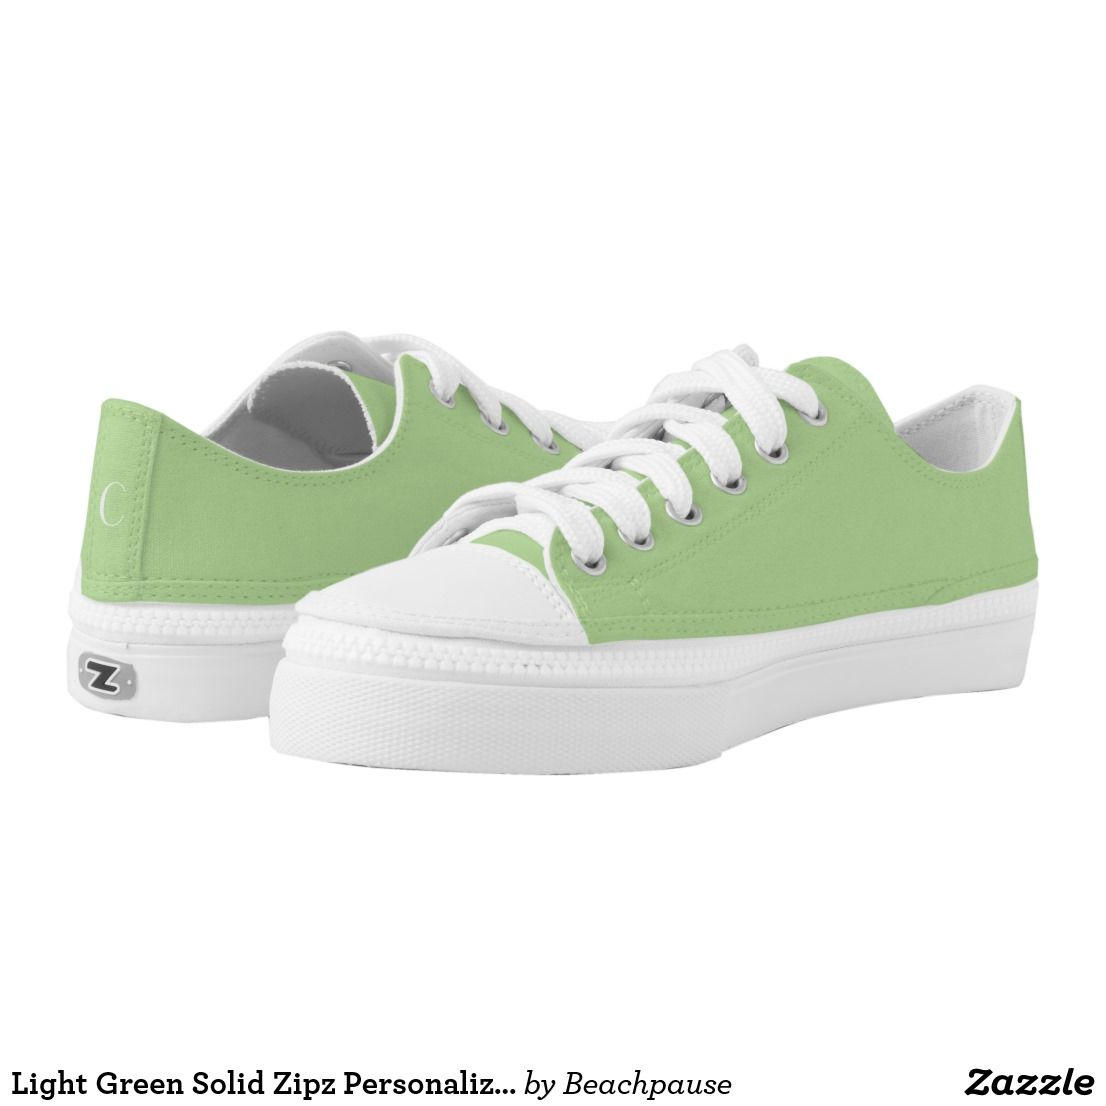 Light Green Solid Zipz Personalize